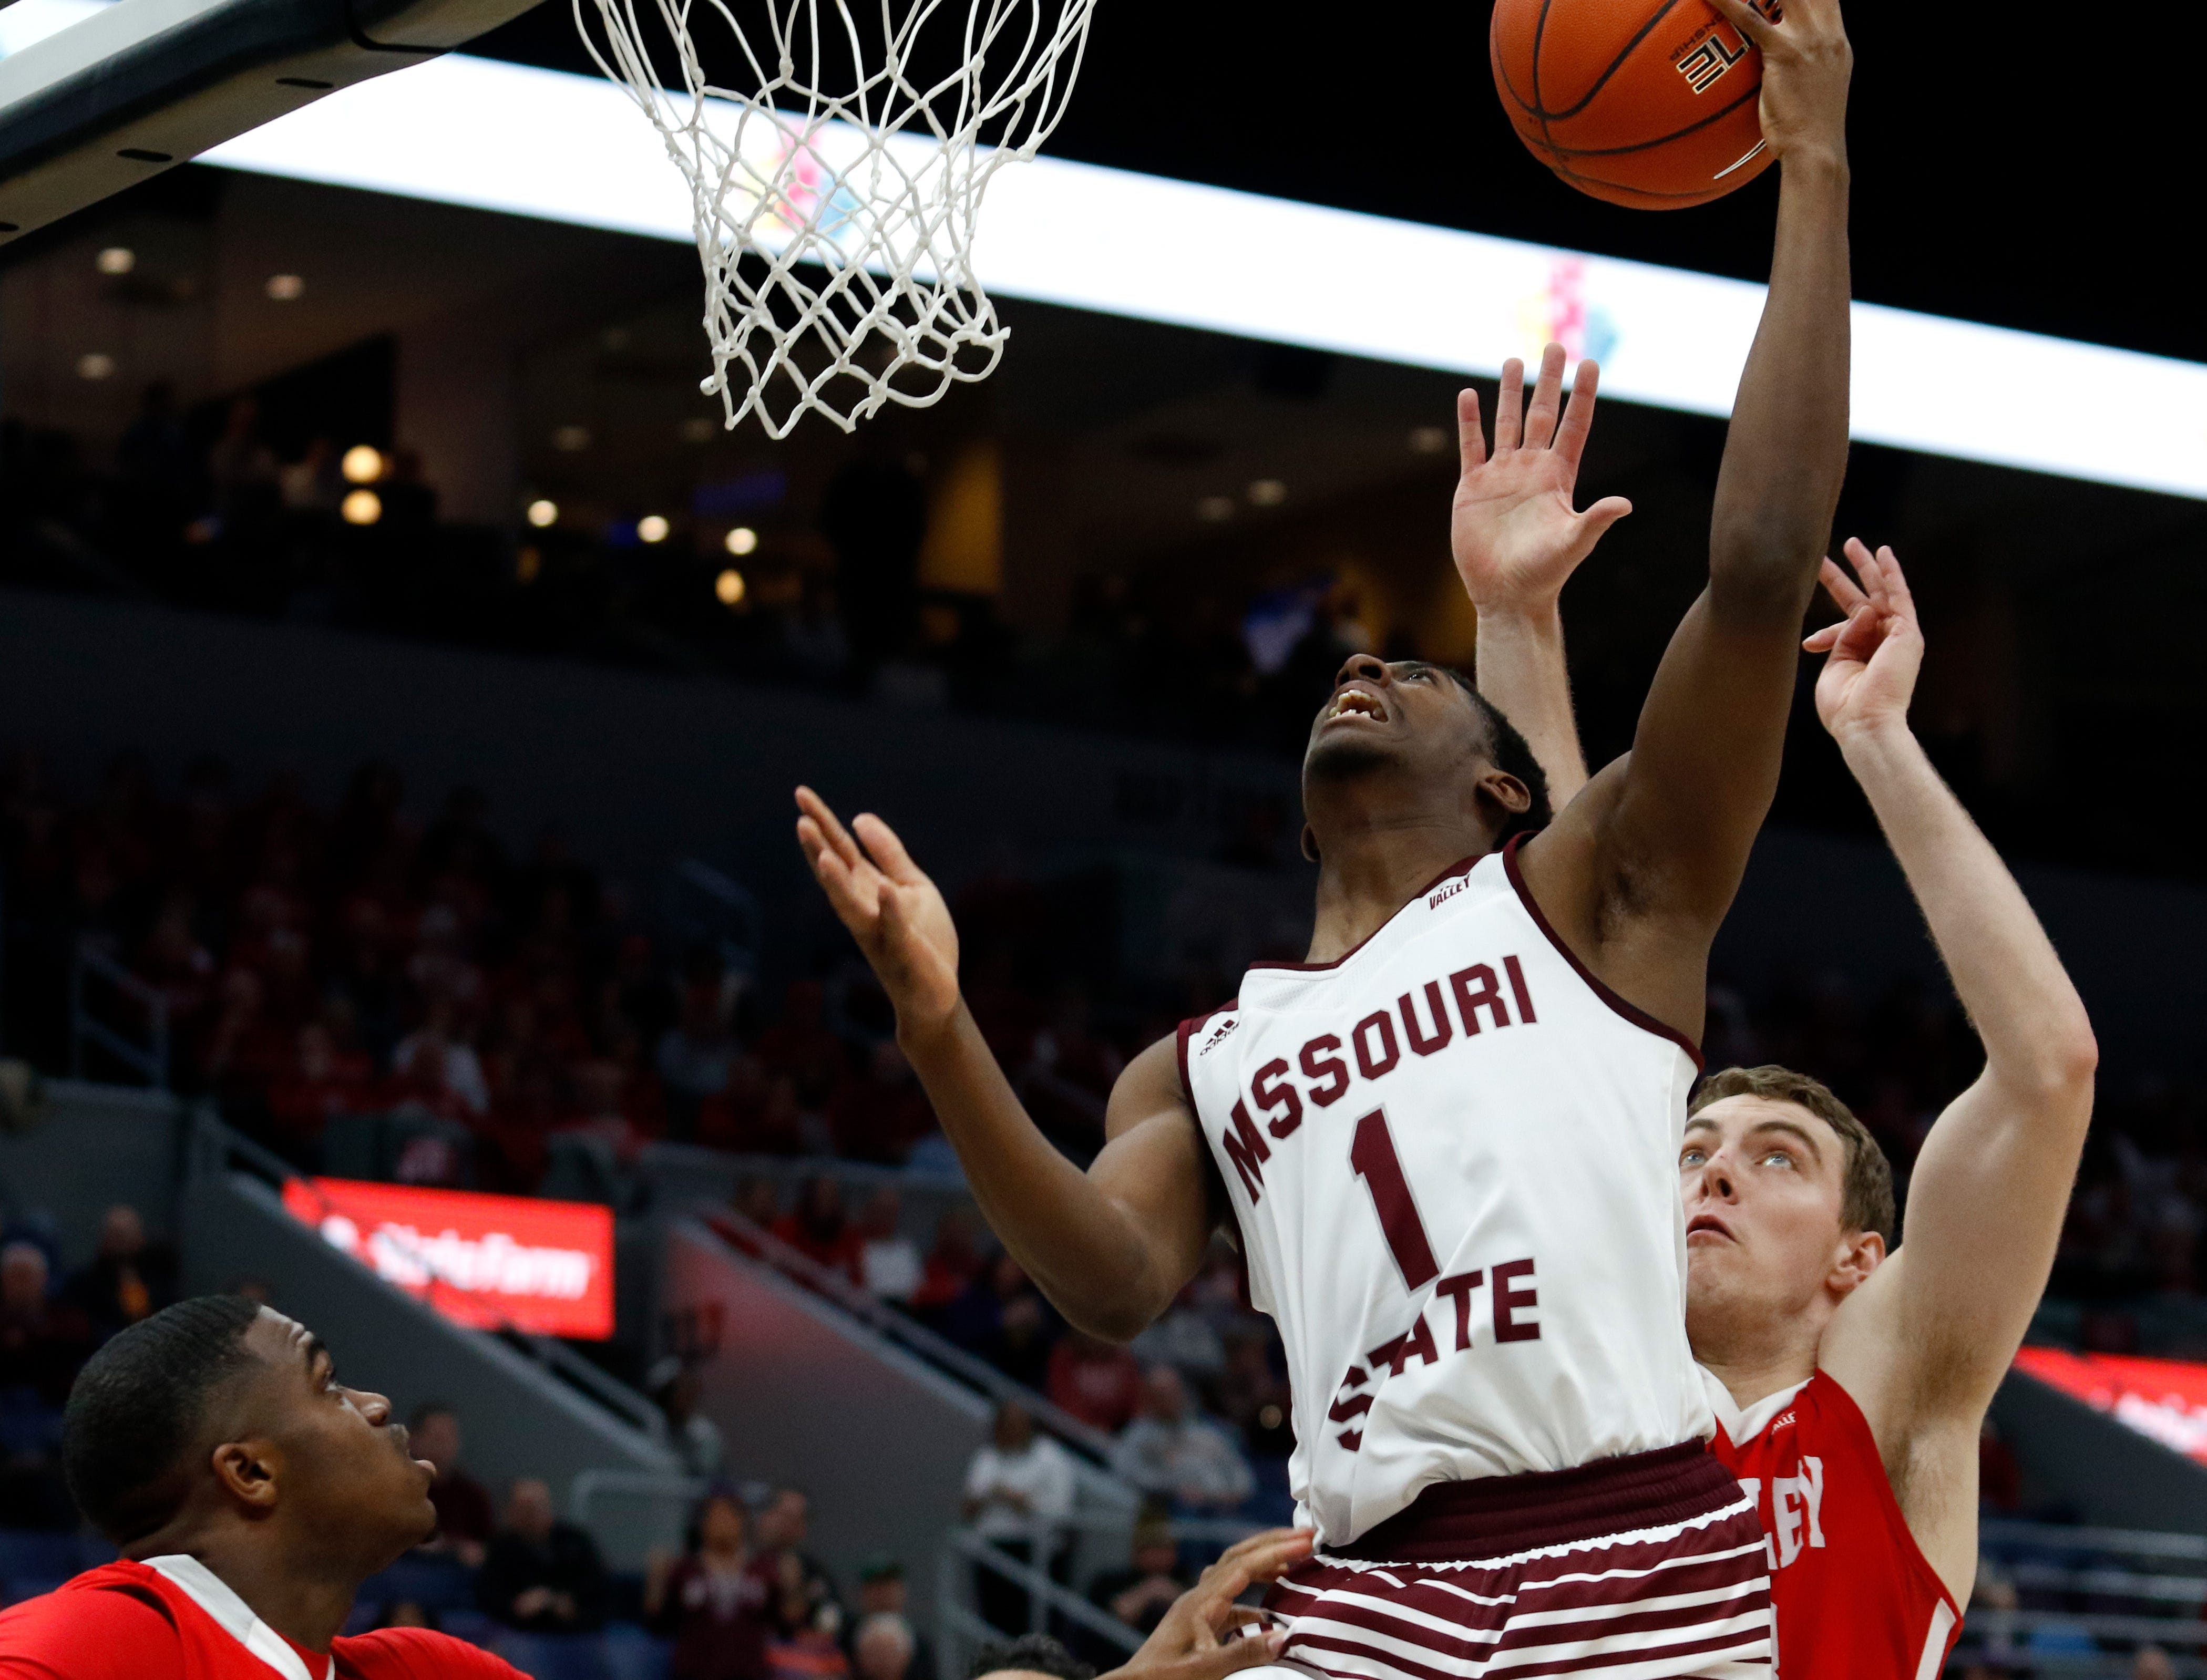 Missouri State's Keandre Cook (1) puts up a shot against Bradley, Friday, March 8, 2019, at the Enterprise Center in St. Louis.